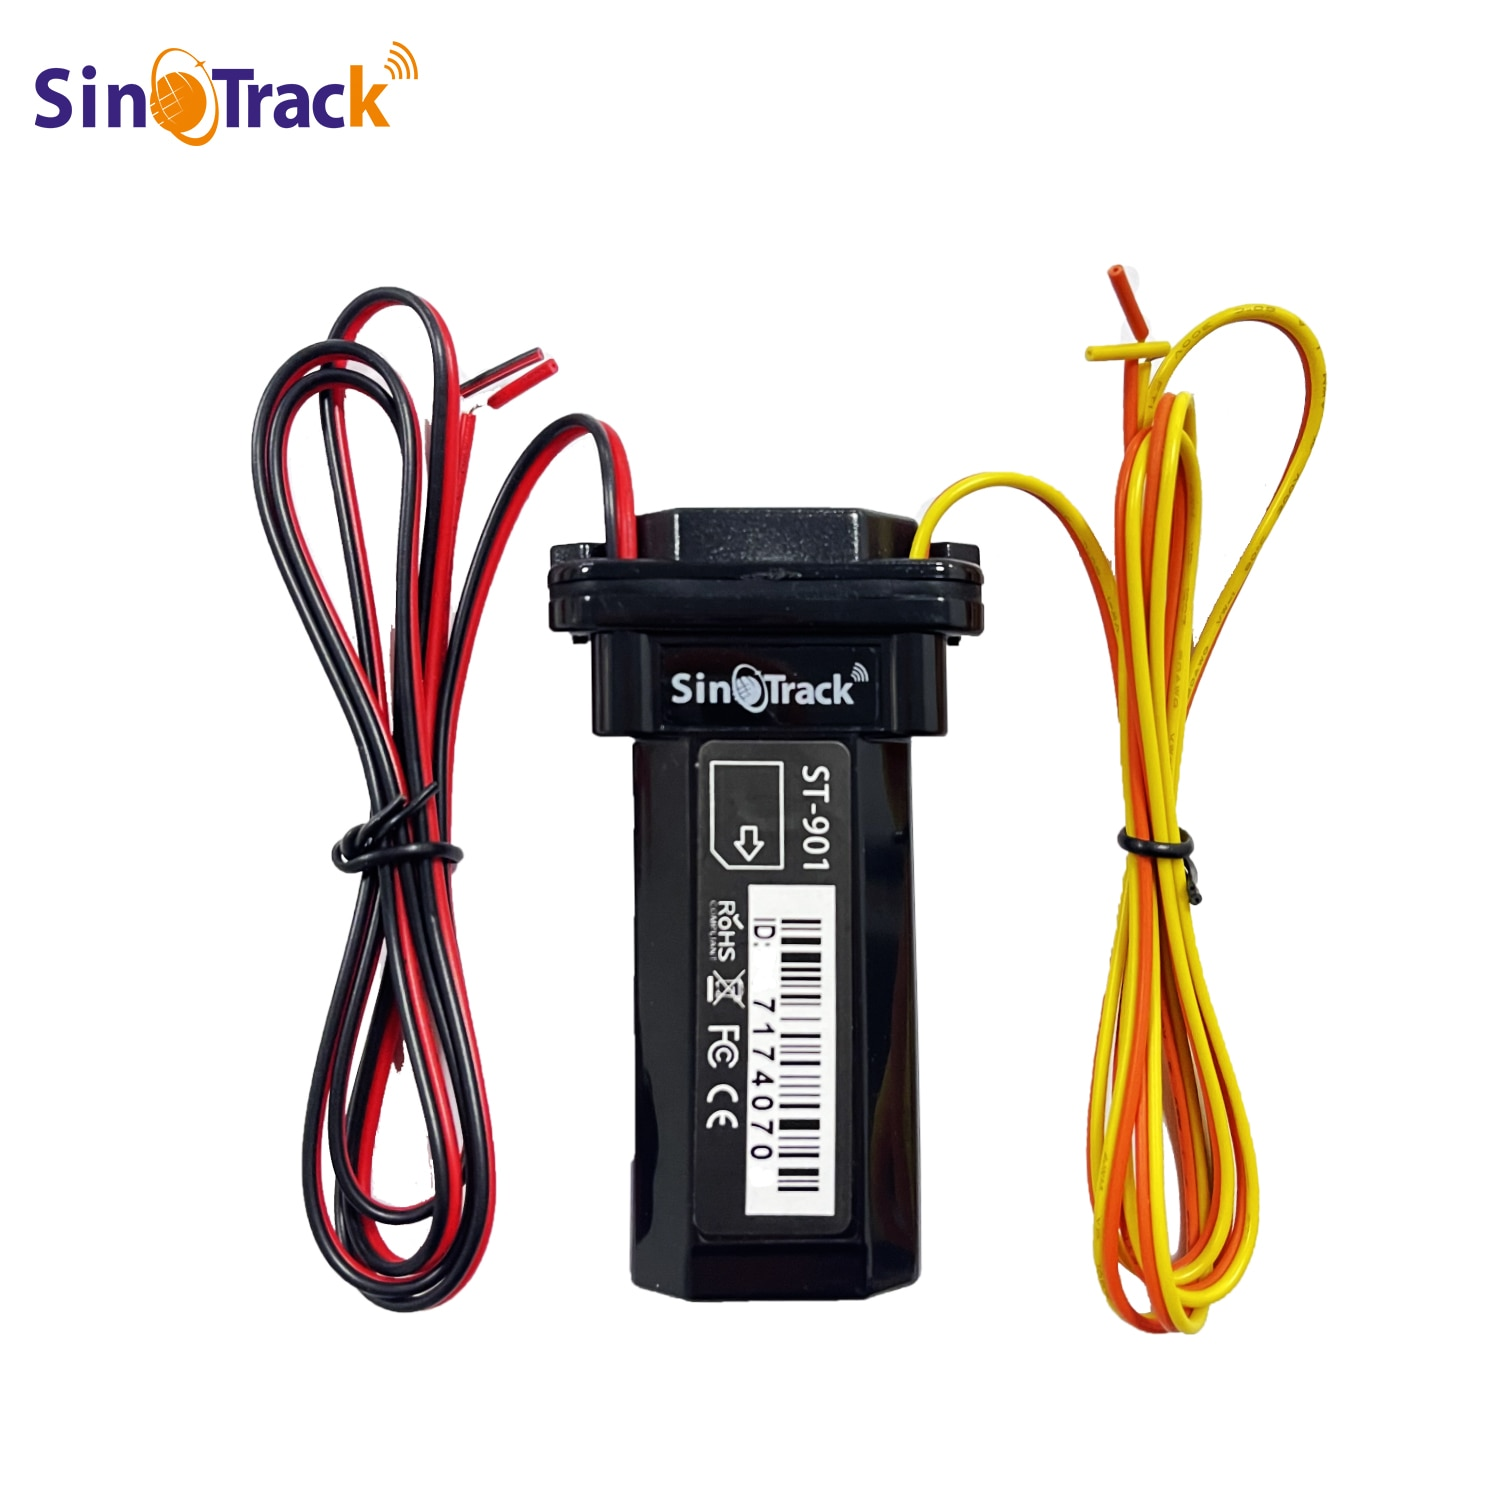 Mini Waterproof ST-901 4 PIN Cable with Relay for Remote Control  Builtin Battery GSM GPS tracker  for Car Motorcycle Vehicle